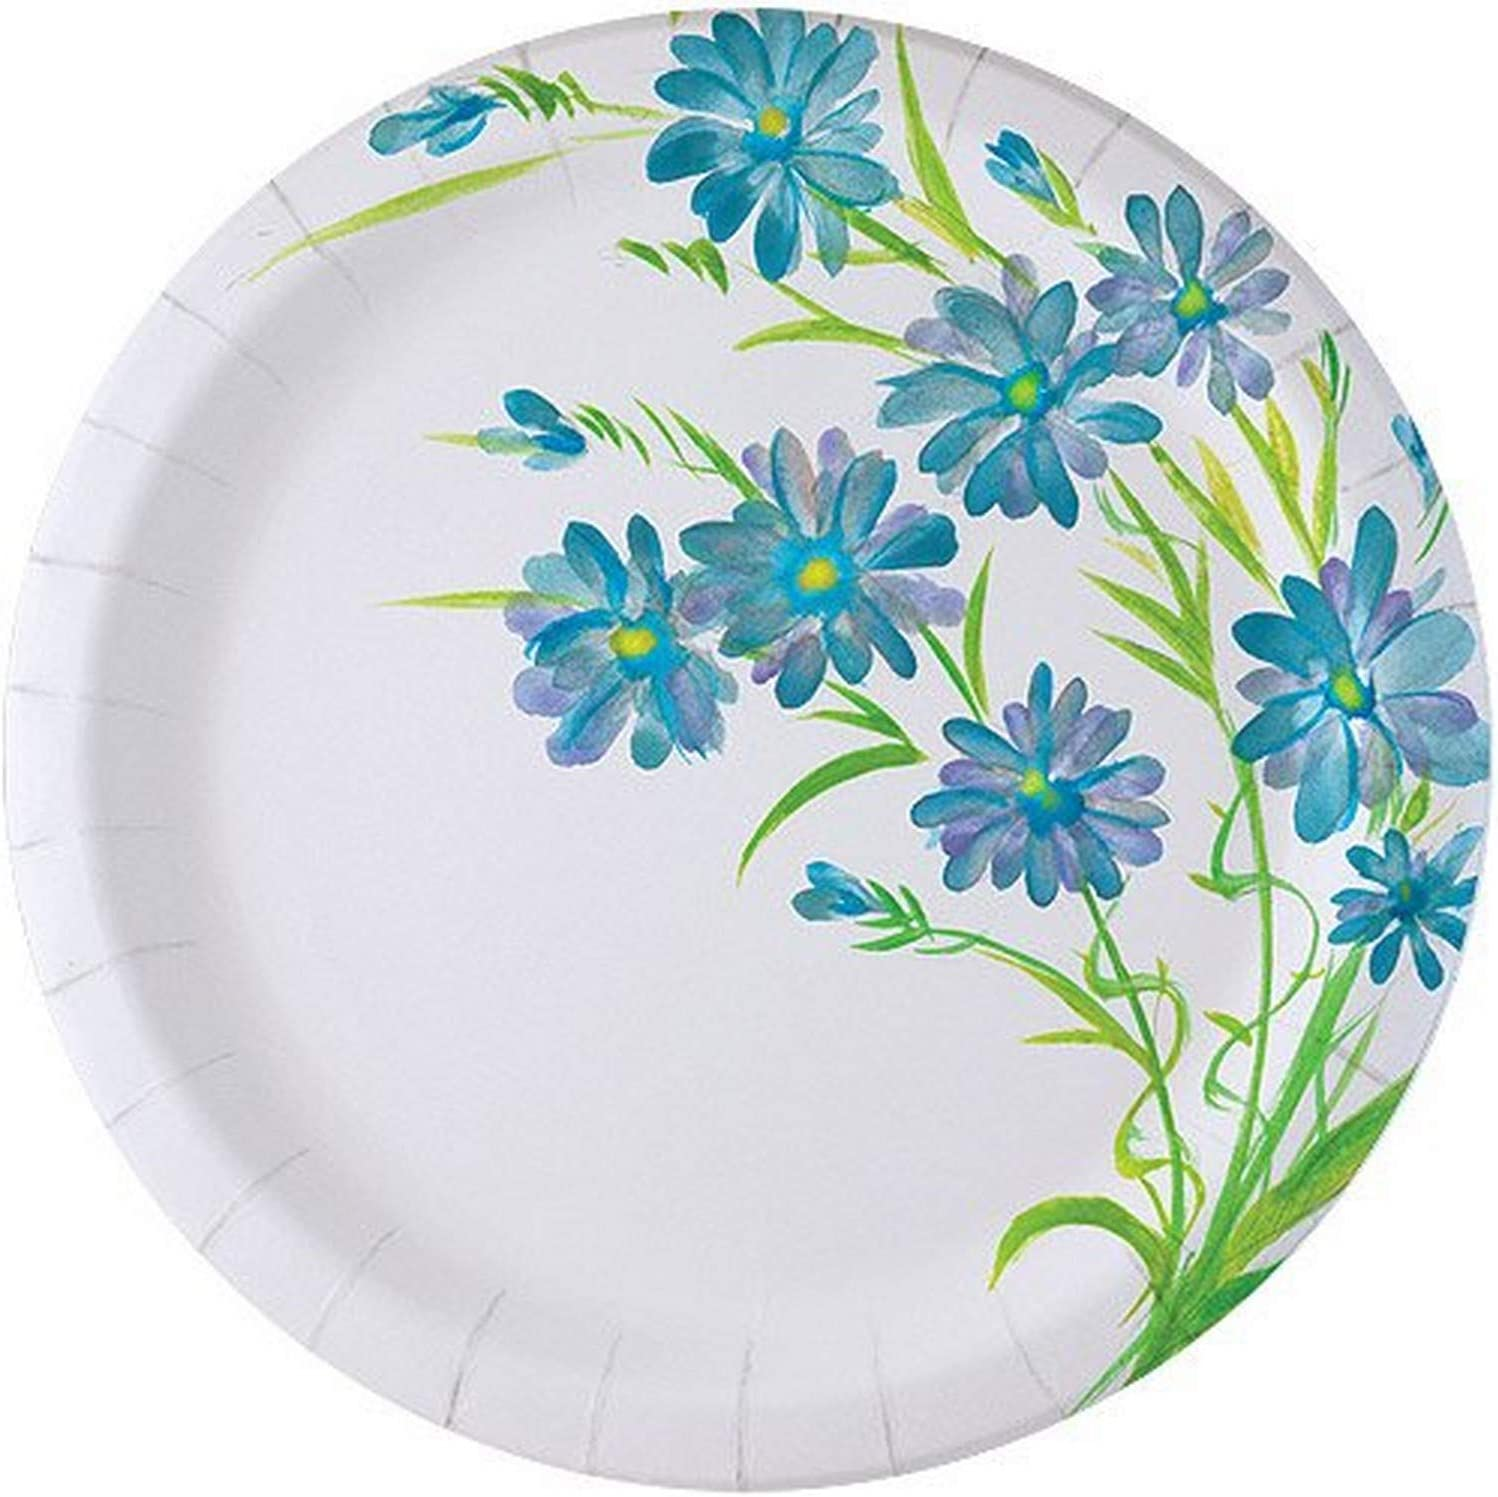 Nicole Home Collection Plates-10 | Blue Floral Collection | Pack of 24 Paper Plate, 10 inches